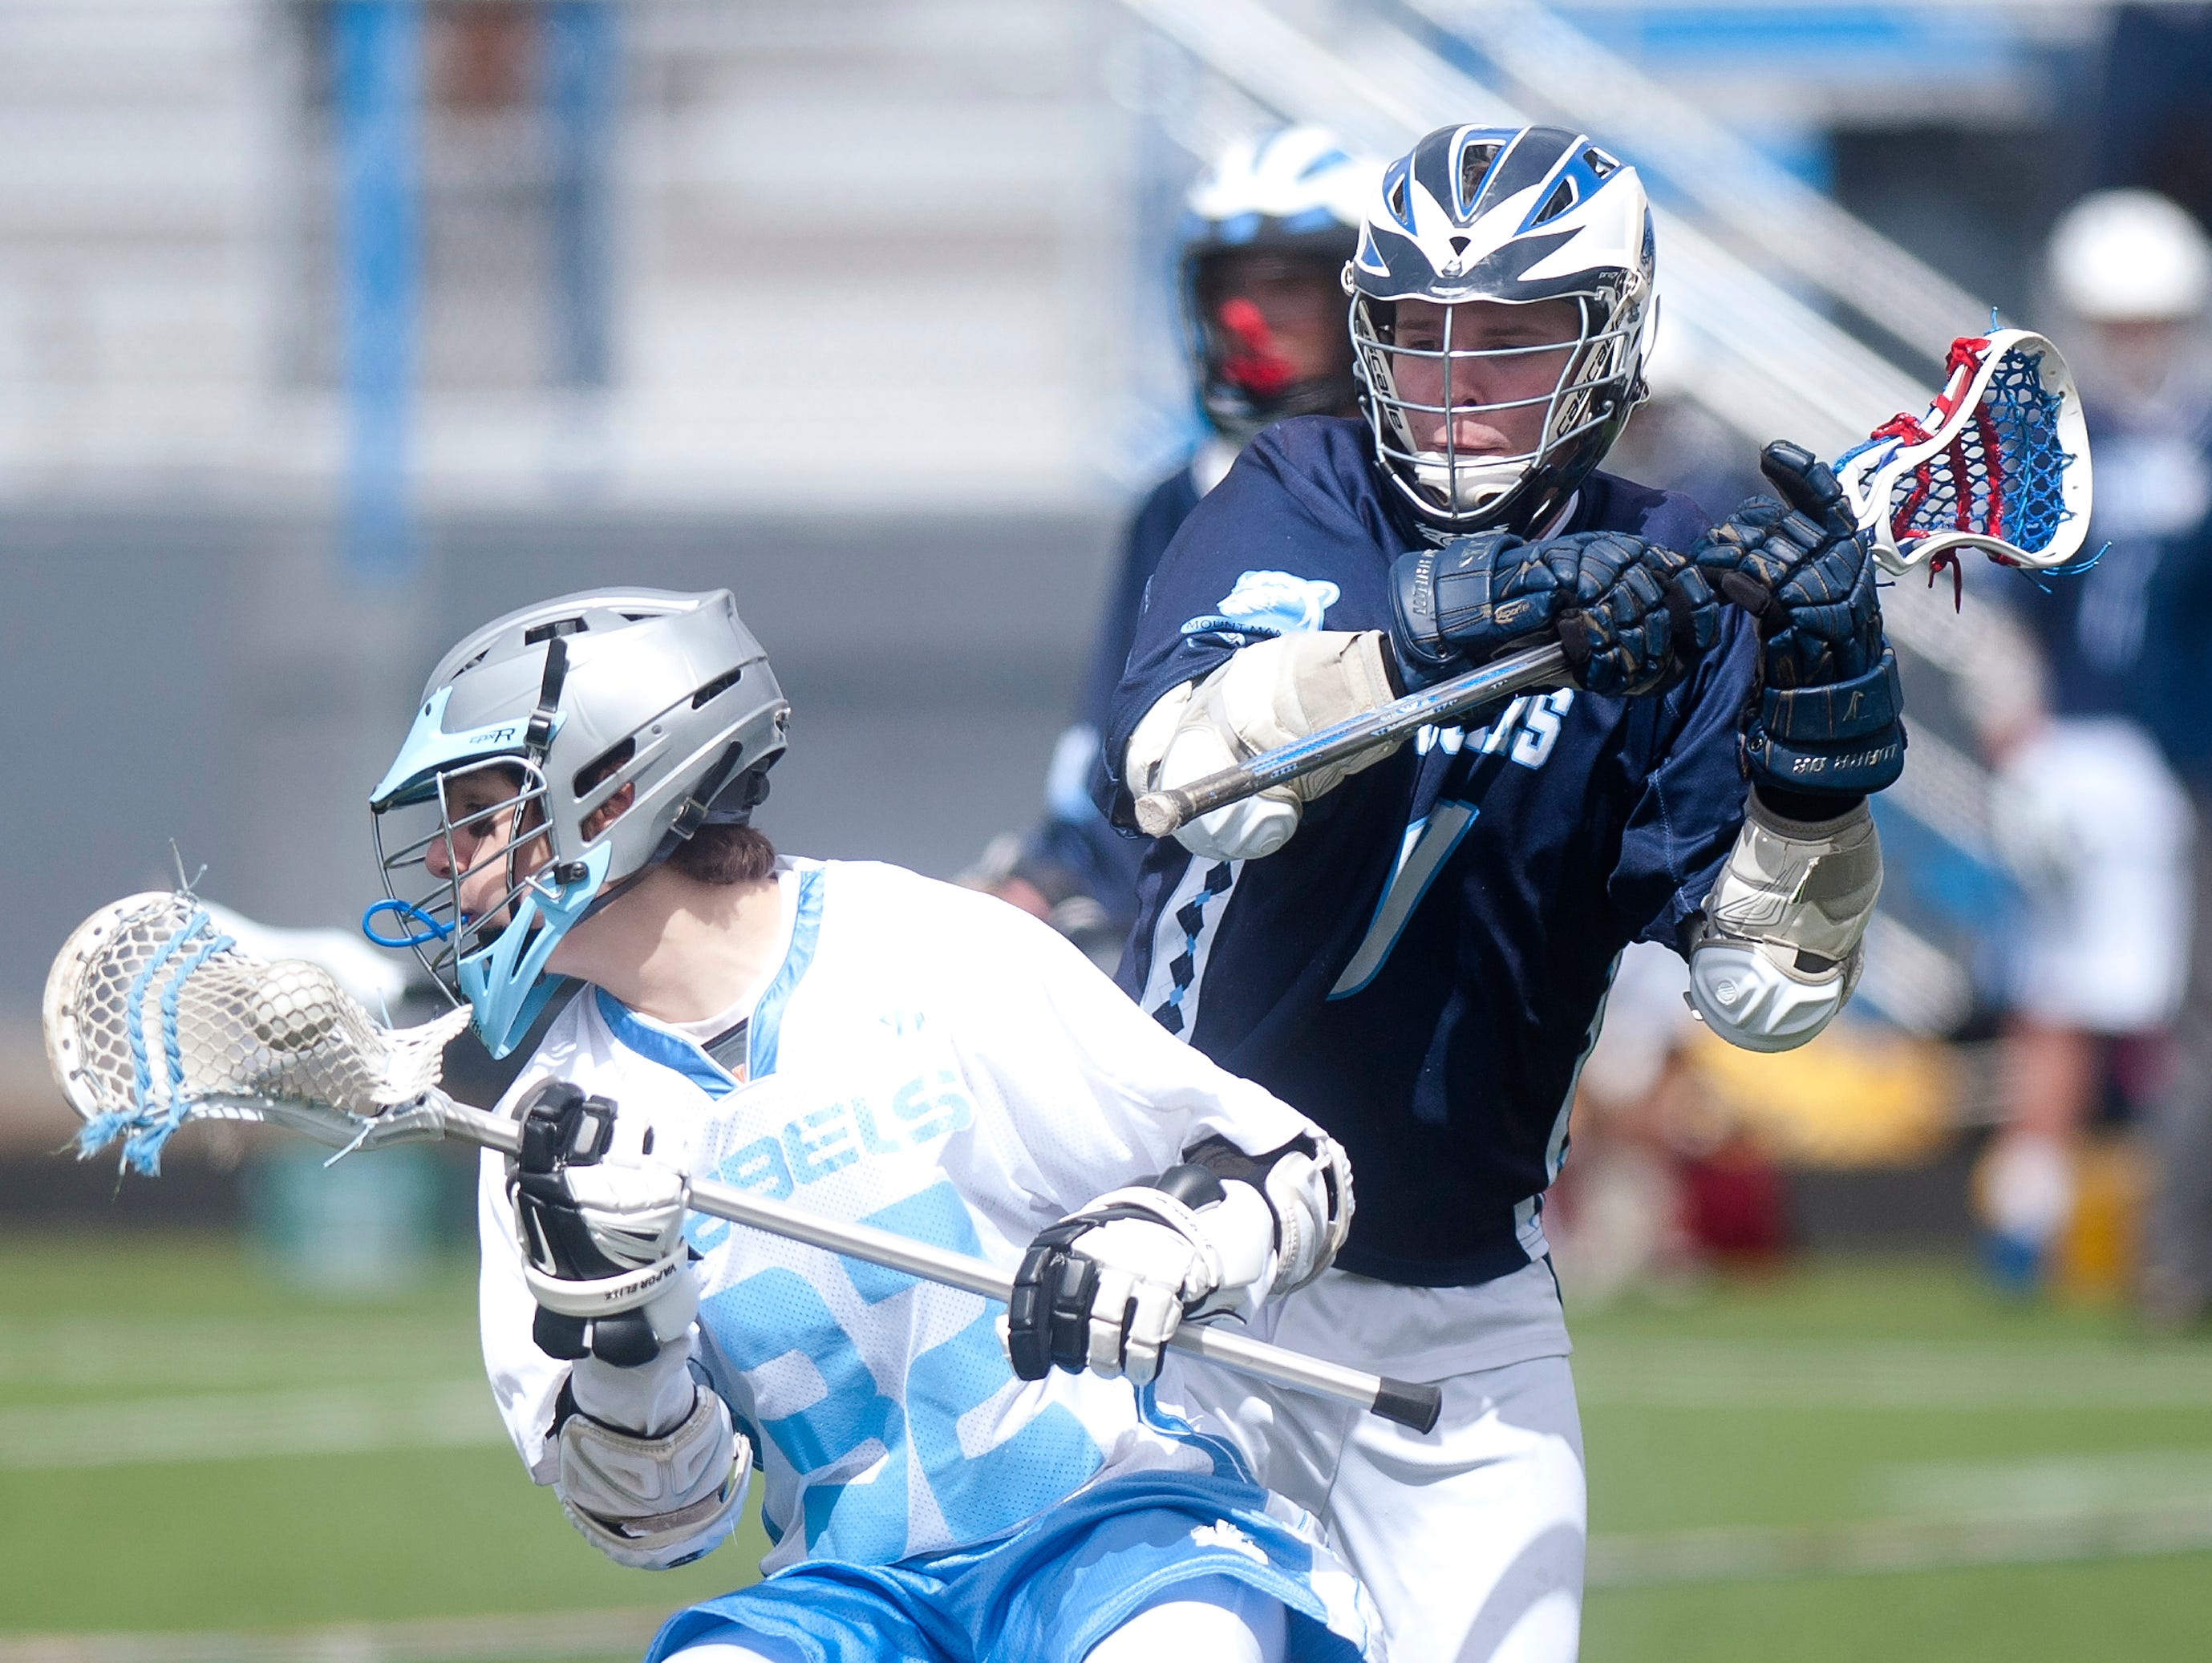 Mount Mansfield's Travis Benson, right, looks to knock the ball away from South Burlington's Max Capano during Saturday's boys lacrosse game in South Burlington.